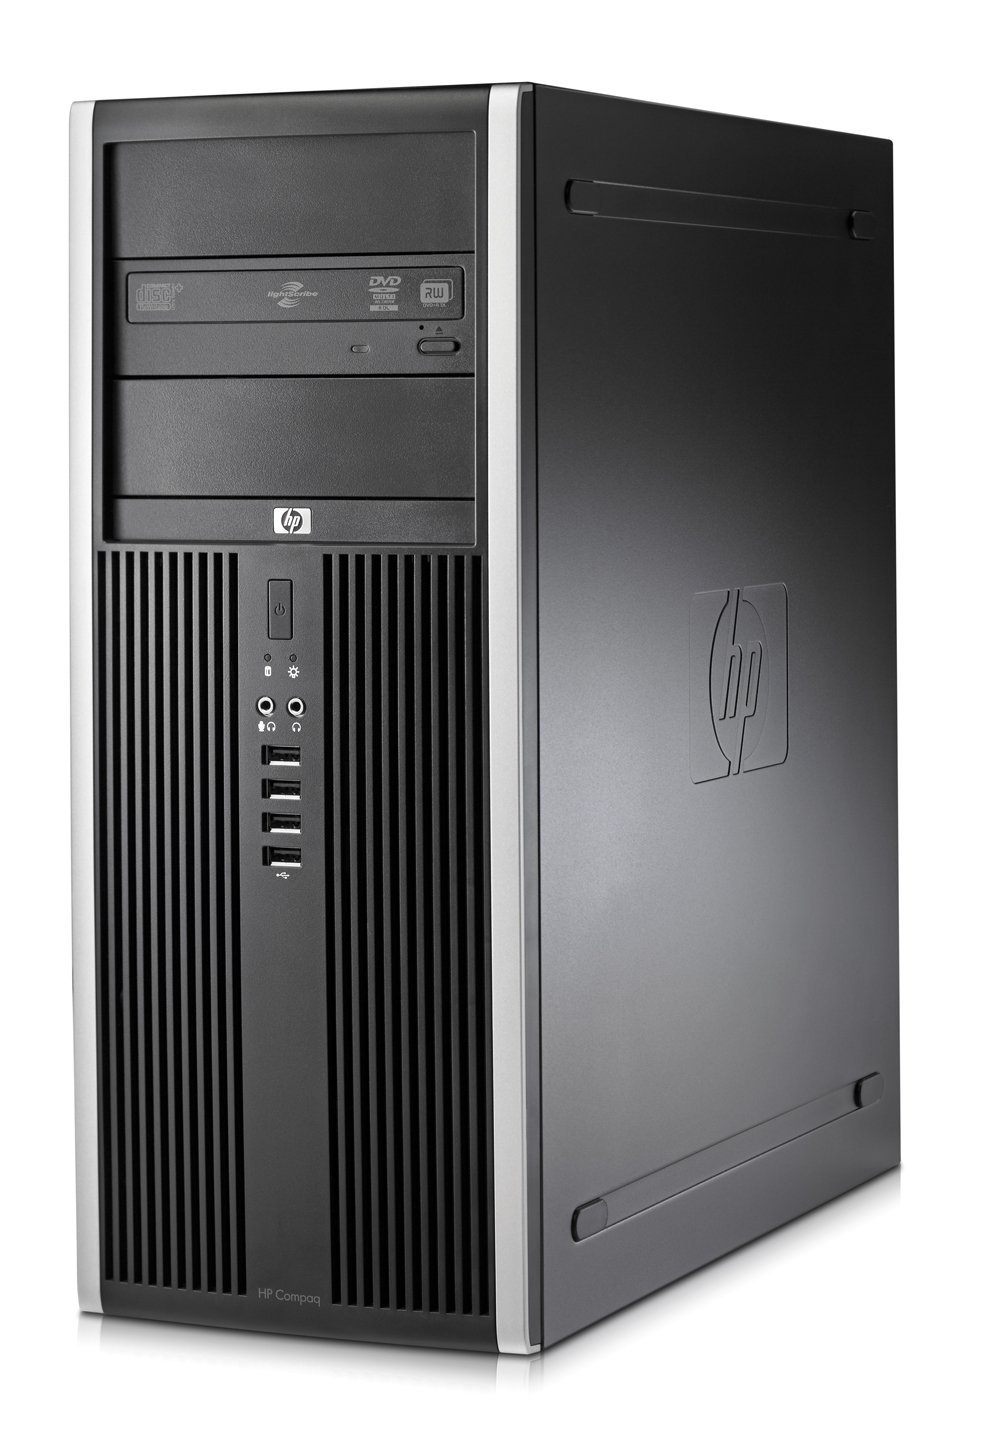 HP 8100 Tower Computer Intel i5 3.2GHz Processor 8GB Memory 1TB HDD Genuine Windows 10 Professional (Certified Refurbished)